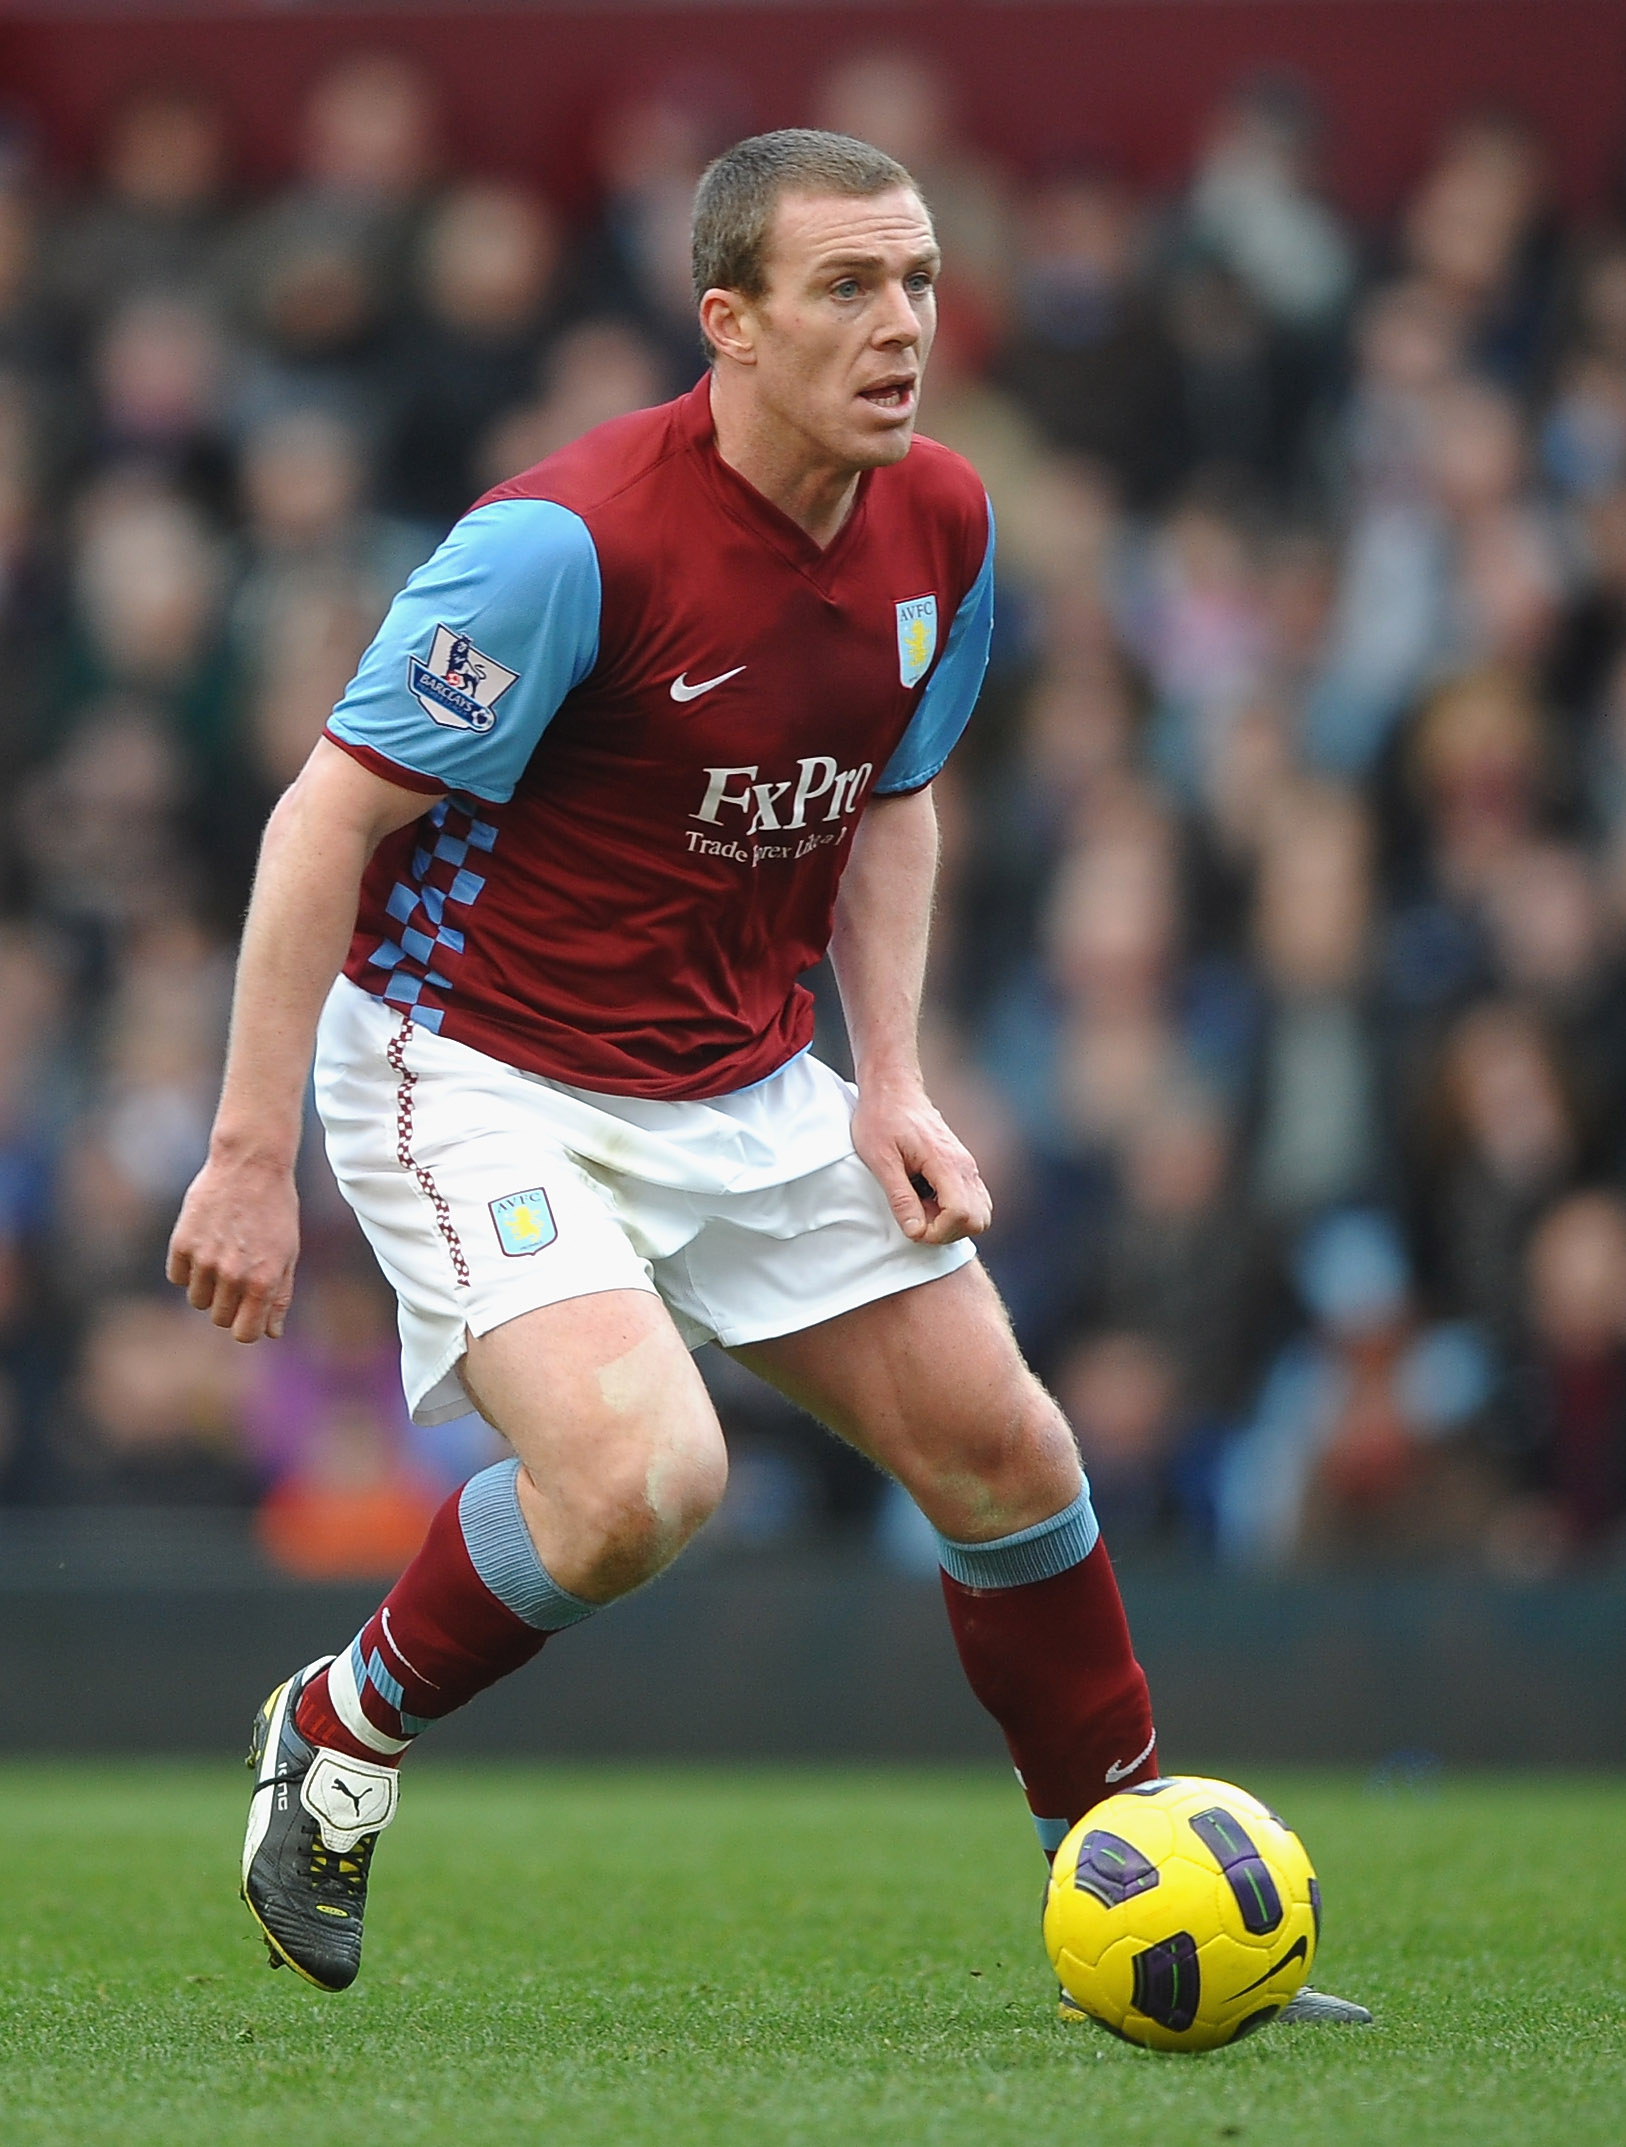 BIRMINGHAM, ENGLAND - FEBRUARY 26: Richard Dunne of Aston Villa in action during the Barclays Premier League match between Aston Villa and Blackburn Rovers at Villa Park on February 26, 2011 in Birmingham, England.  (Photo by Laurence Griffiths/Getty Imag